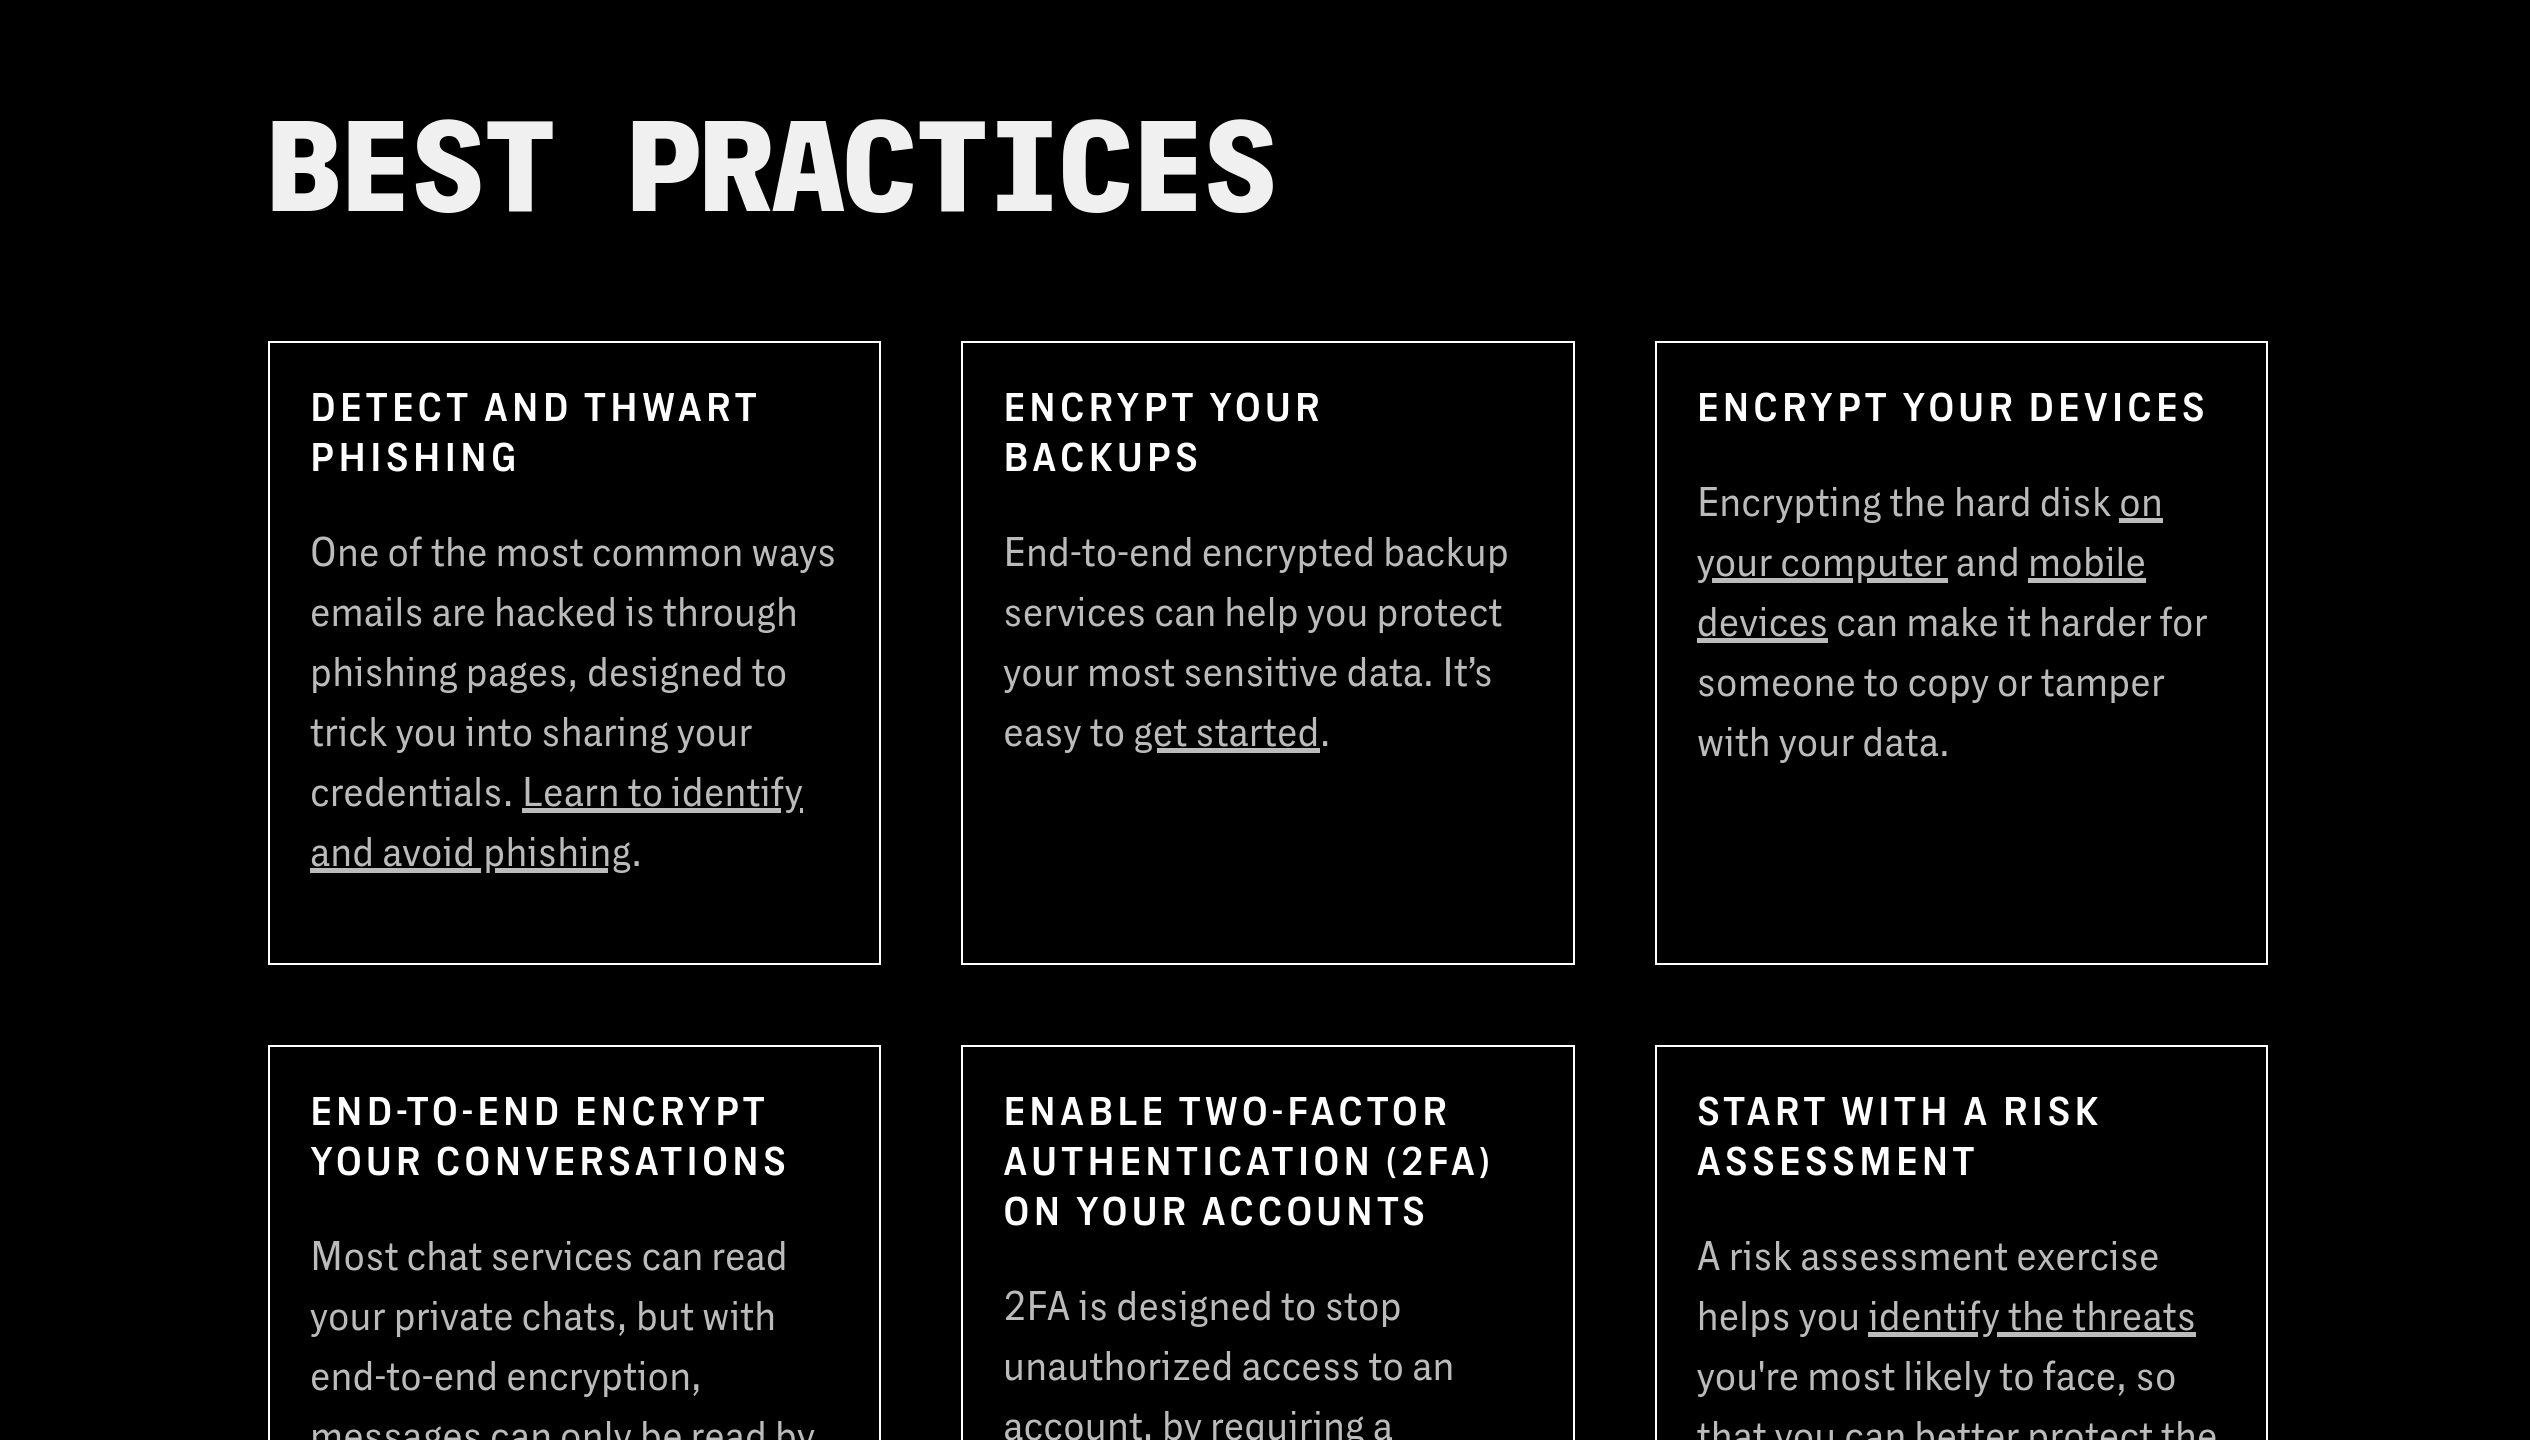 Digital Security for Filmmakers platform best practices page with tips laid out in boxes